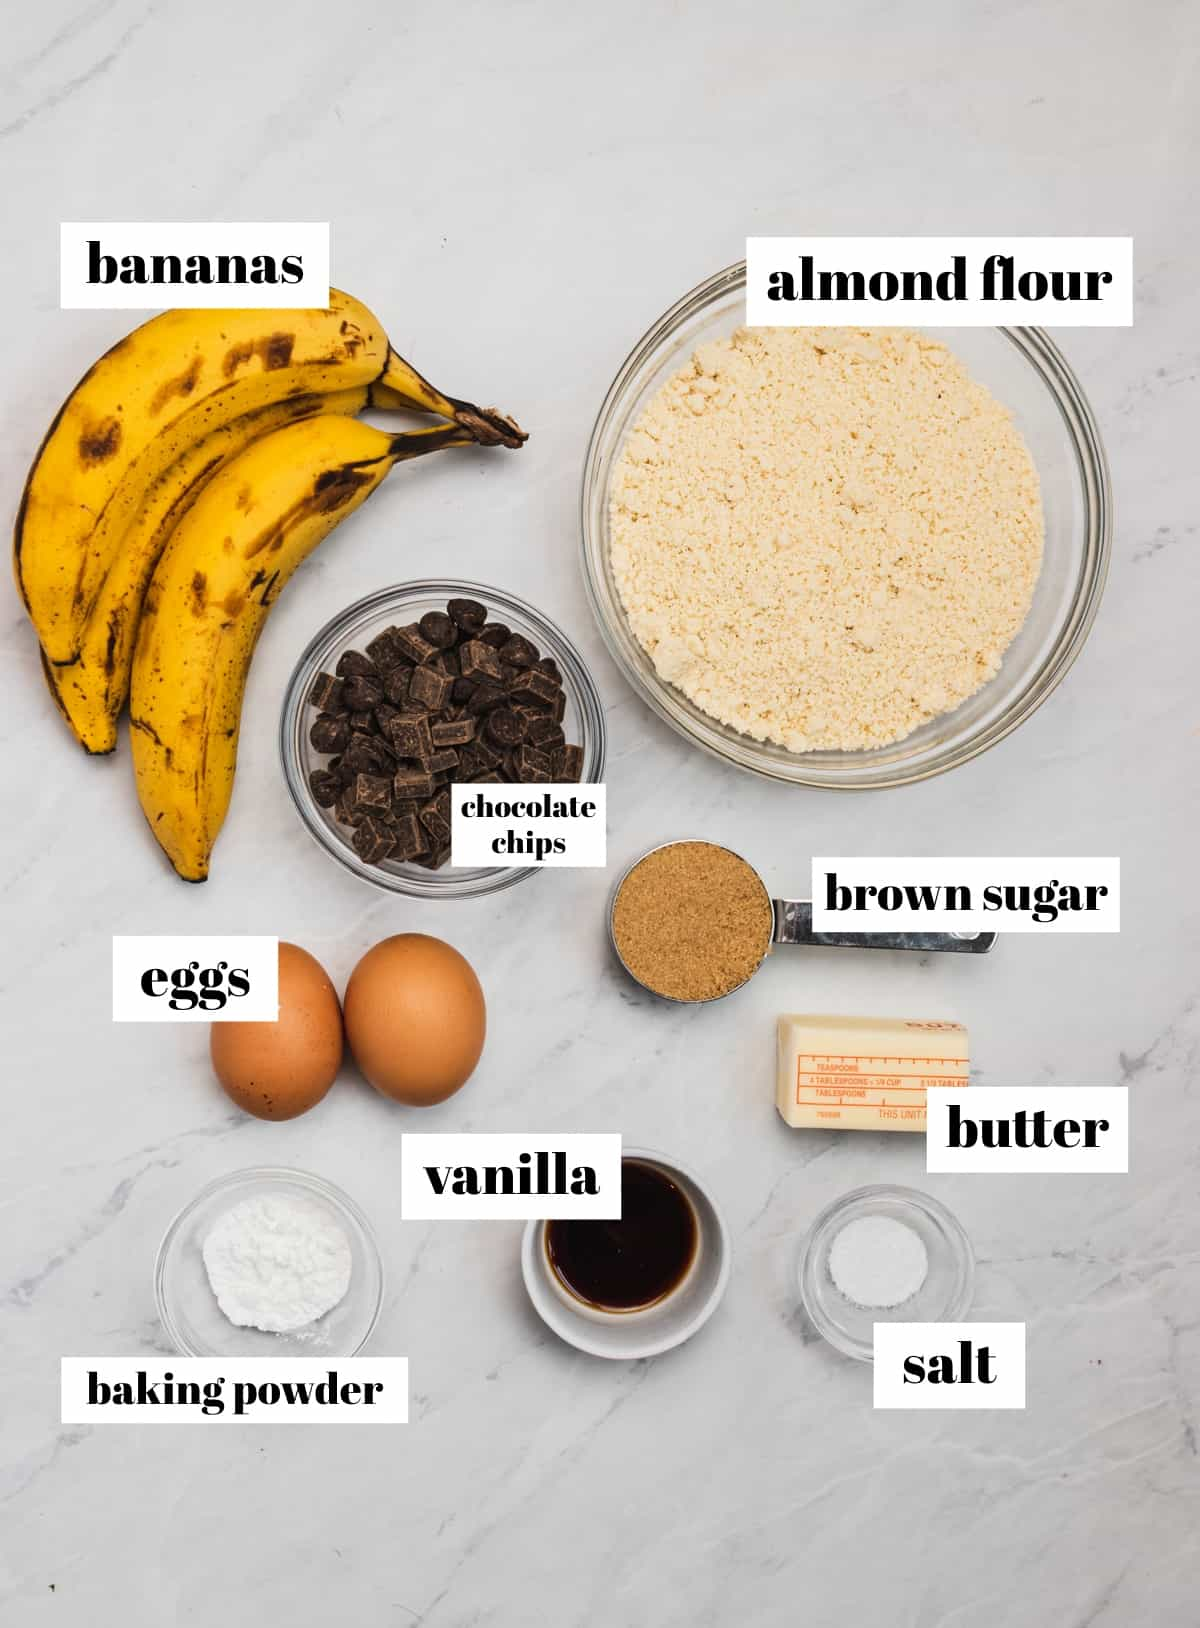 Butter, baking powder, bananas, brown sugar and other ingredients labeled on counter.